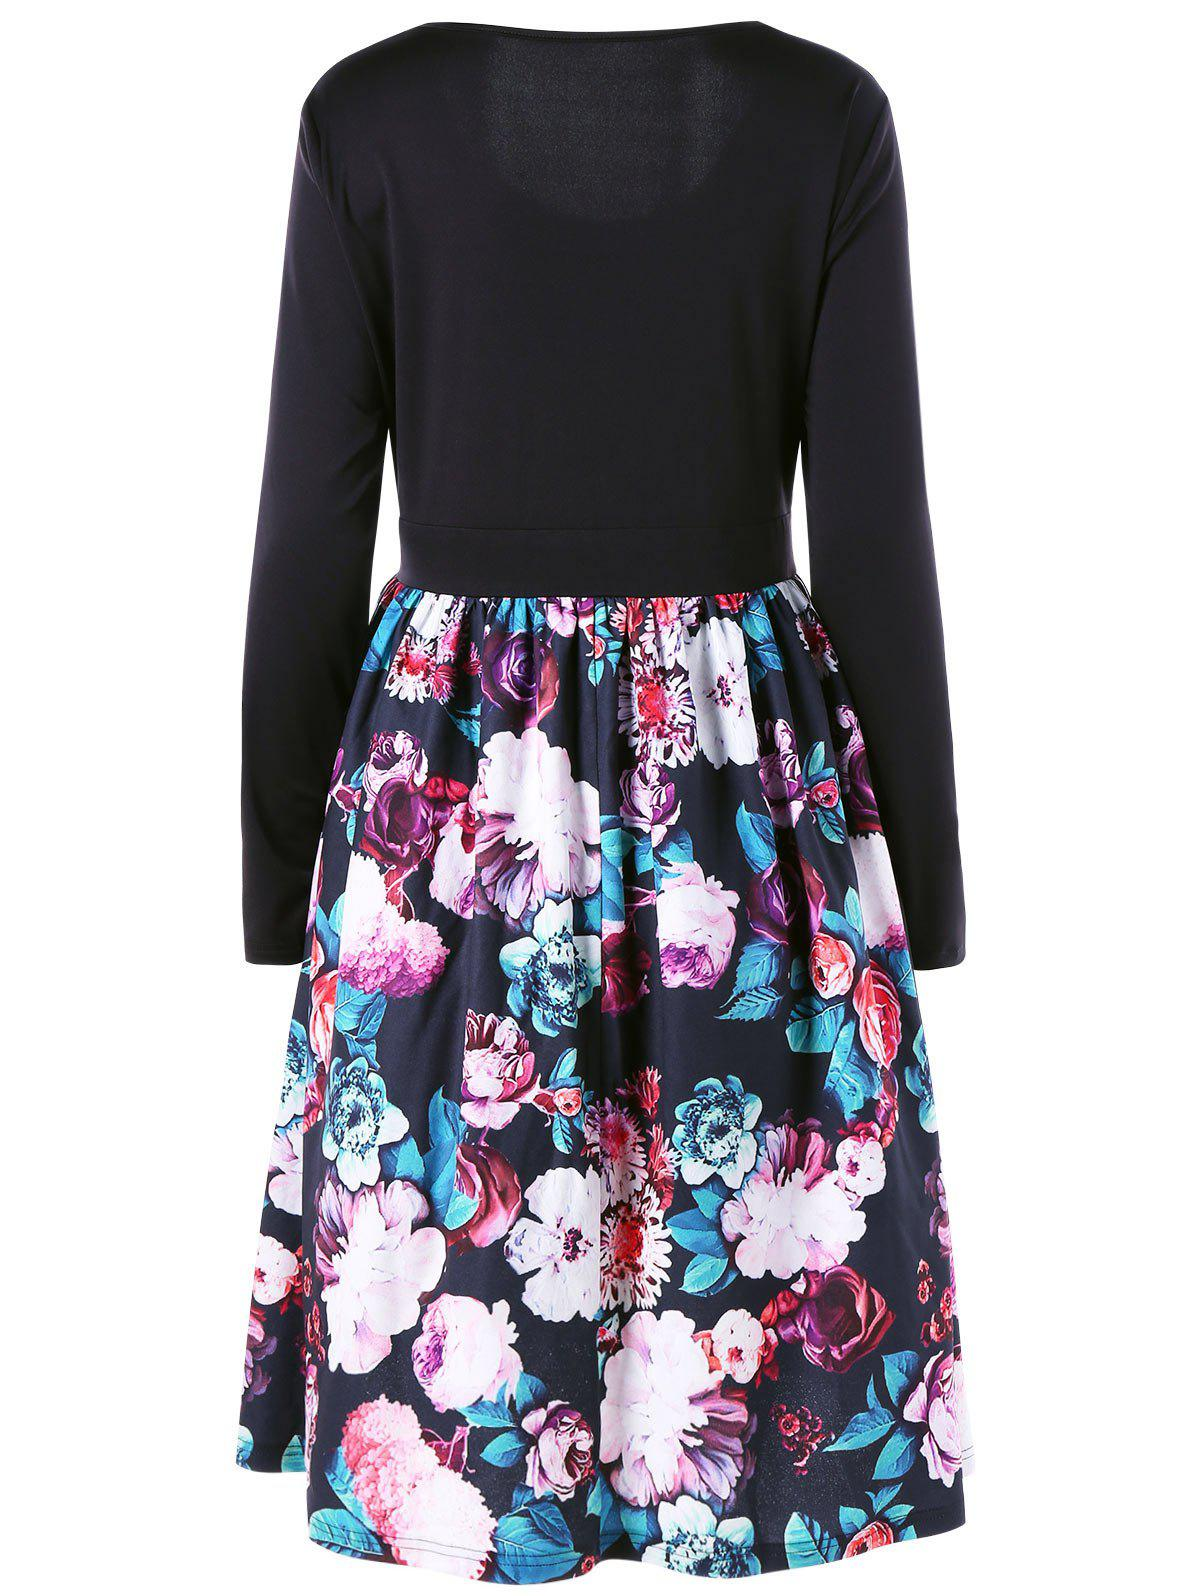 Plus Size Long Sleeve Floral Print Skater Dress - BLACK 5XL